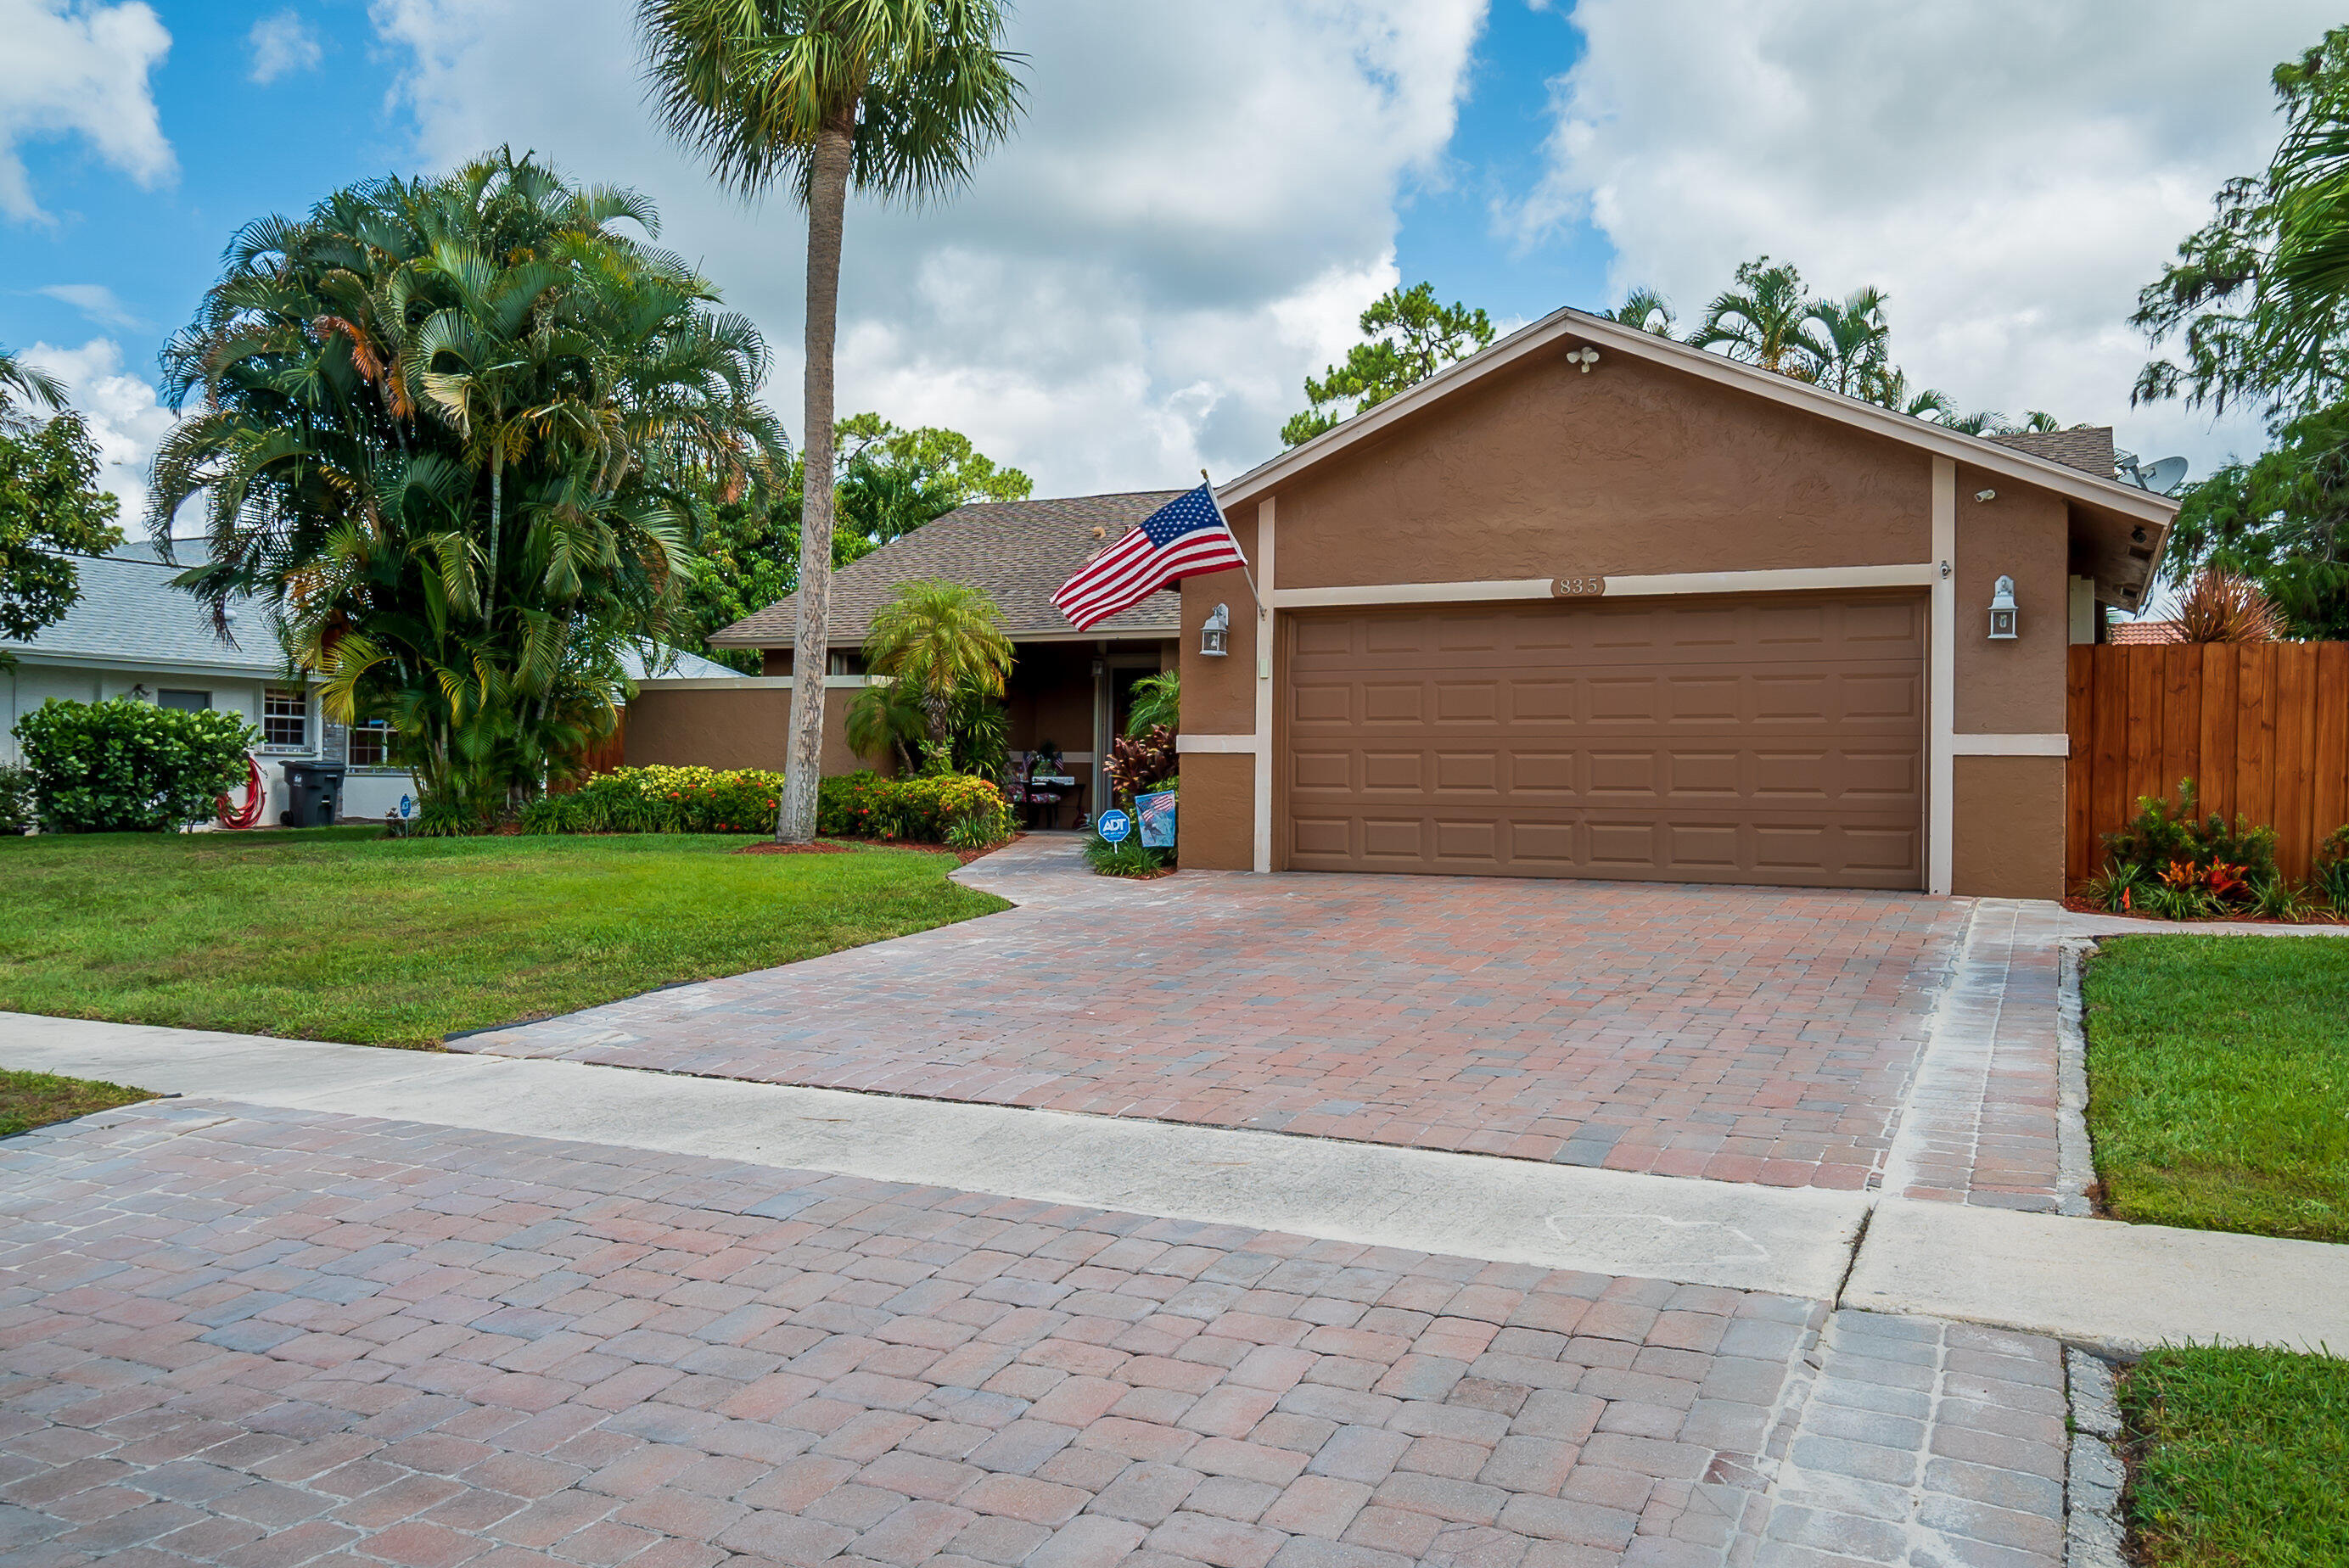 835  Ivy Drive  For Sale 10722391, FL